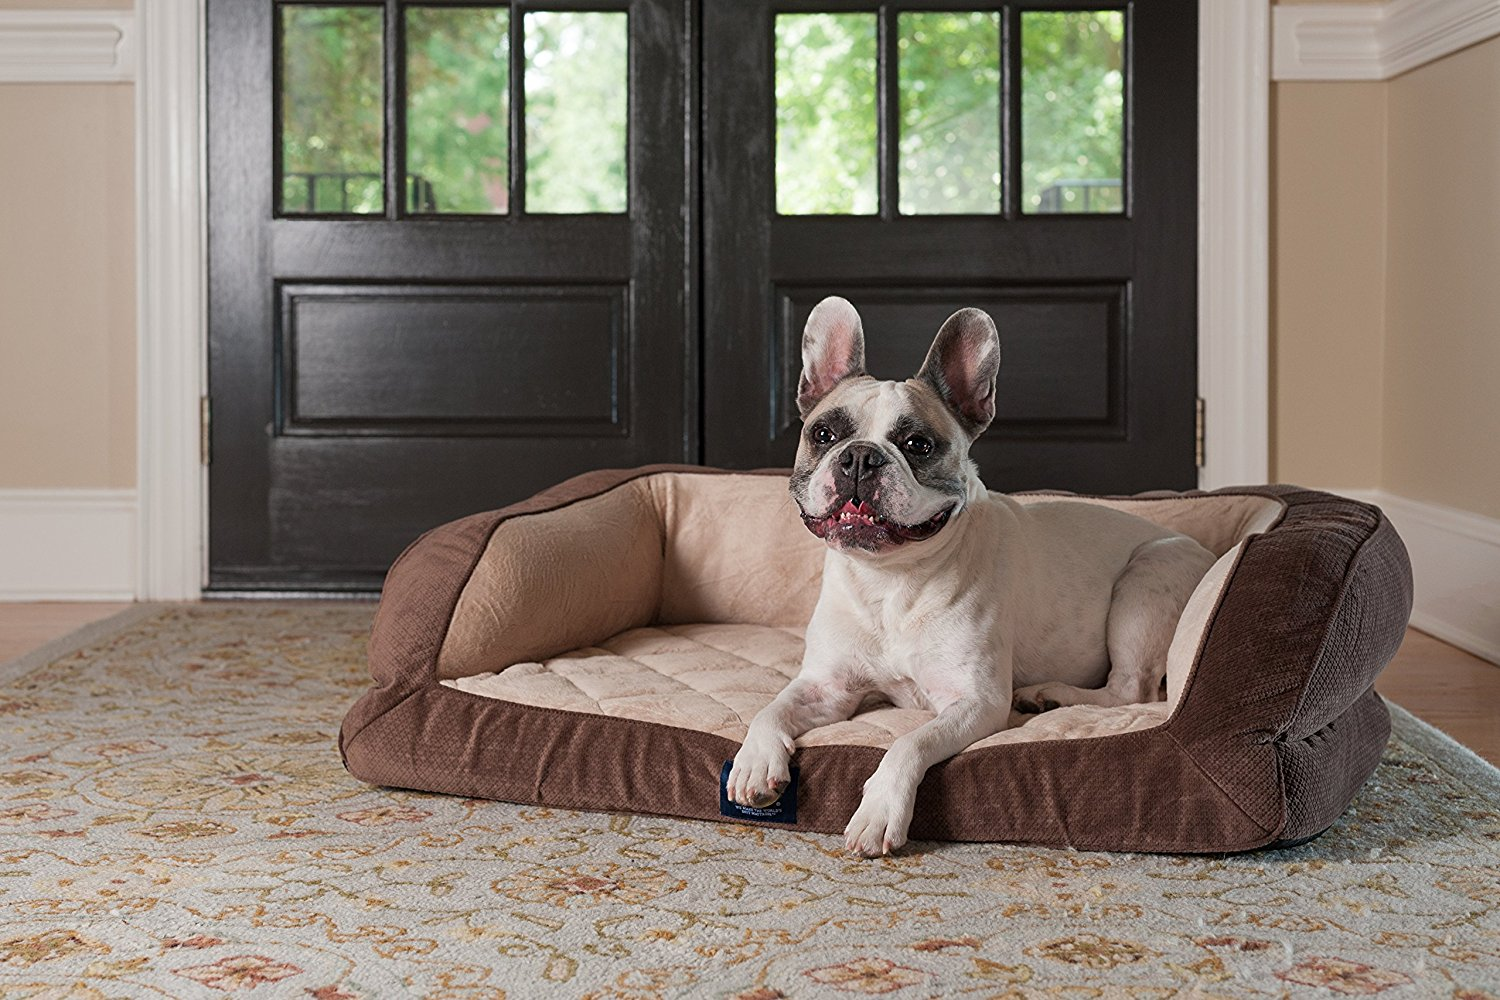 3.-Serta-Orthopedic-Quilted-Couch 10 Best Beds for Large Dogs